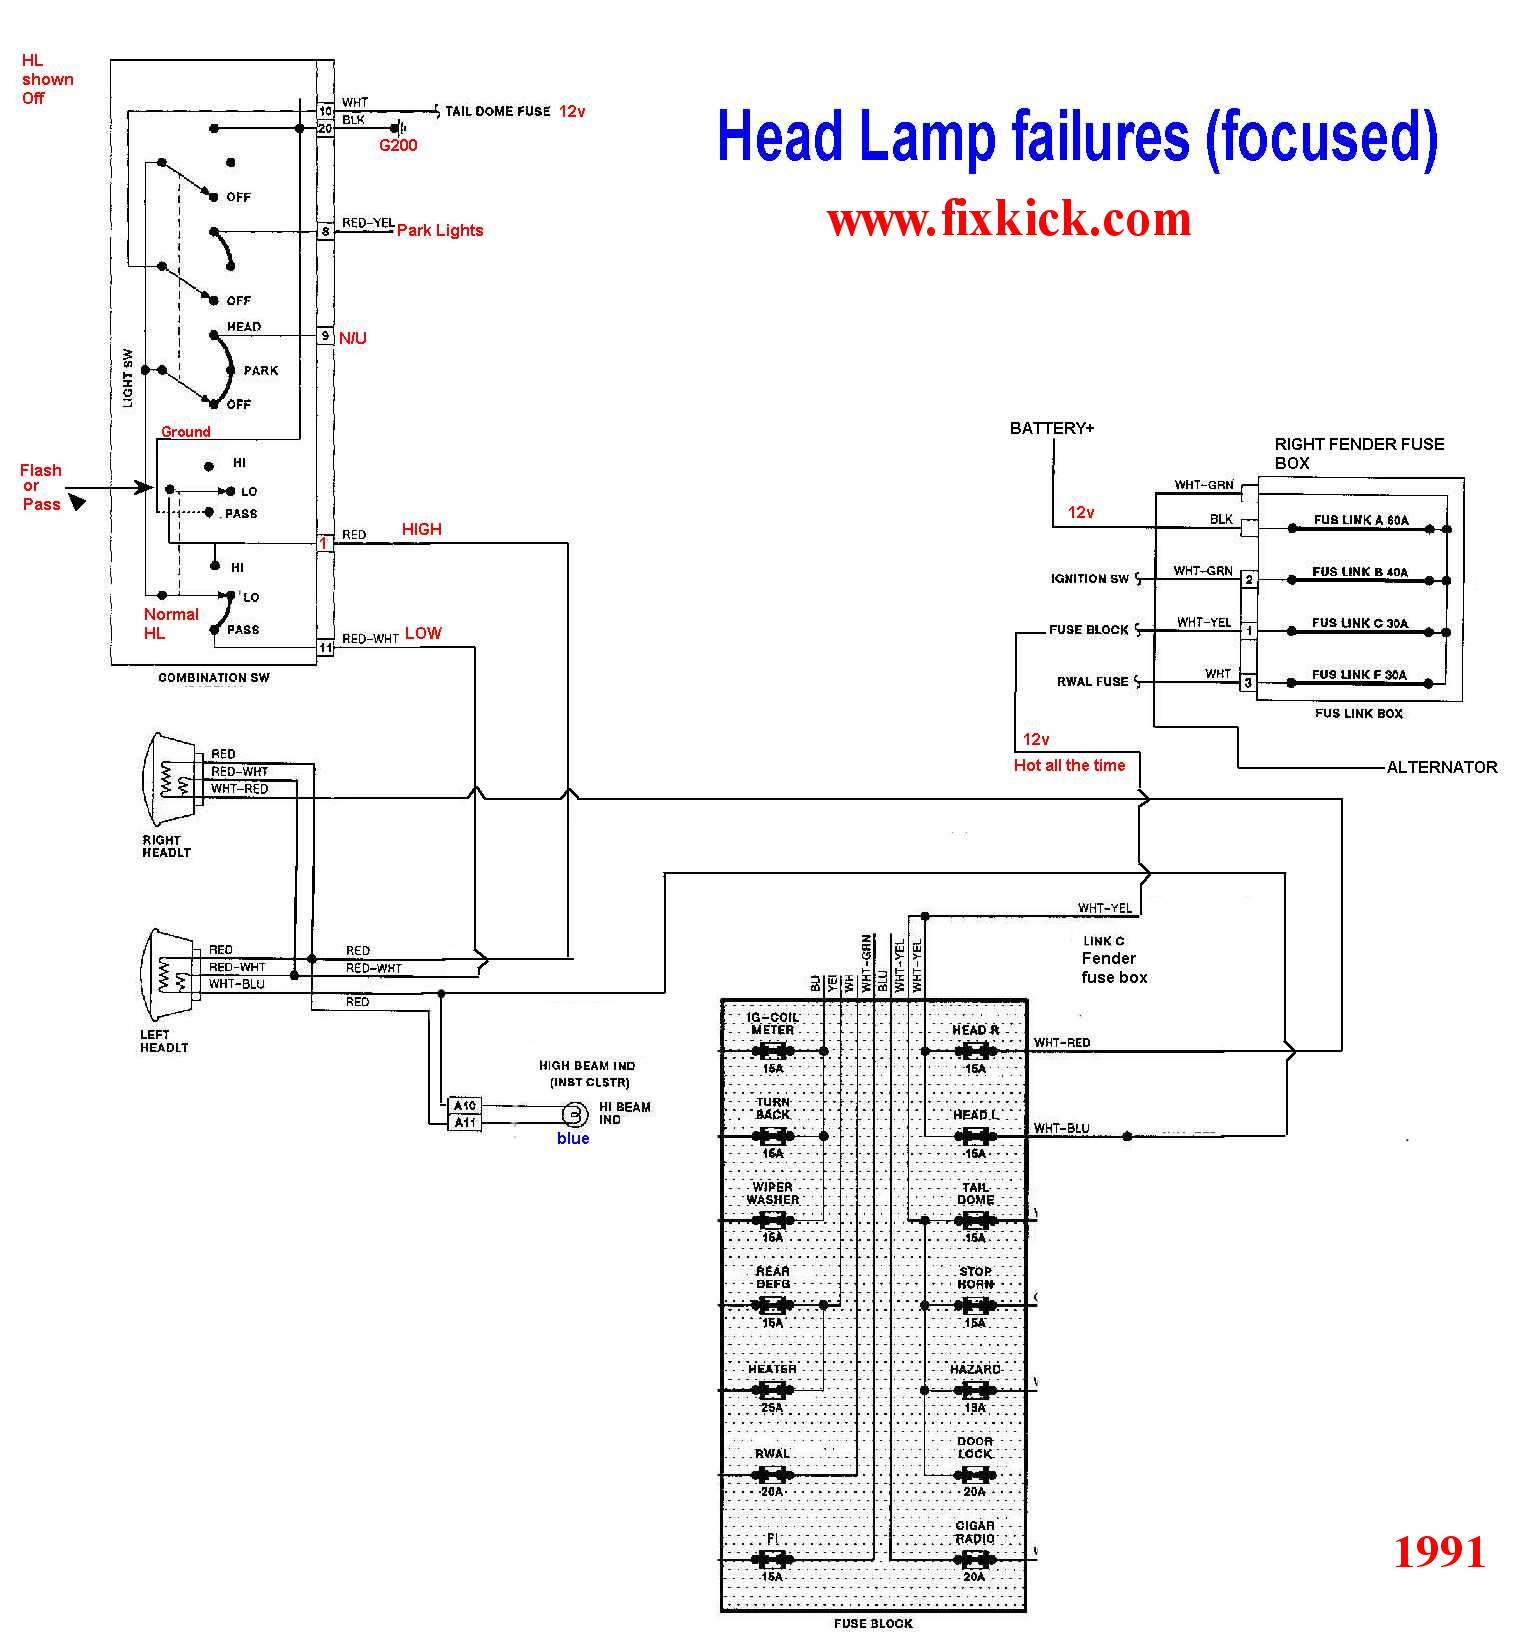 HL1A schematics to run engine radio wiring diagram for 1994 geo prizm lsi at pacquiaovsvargaslive.co